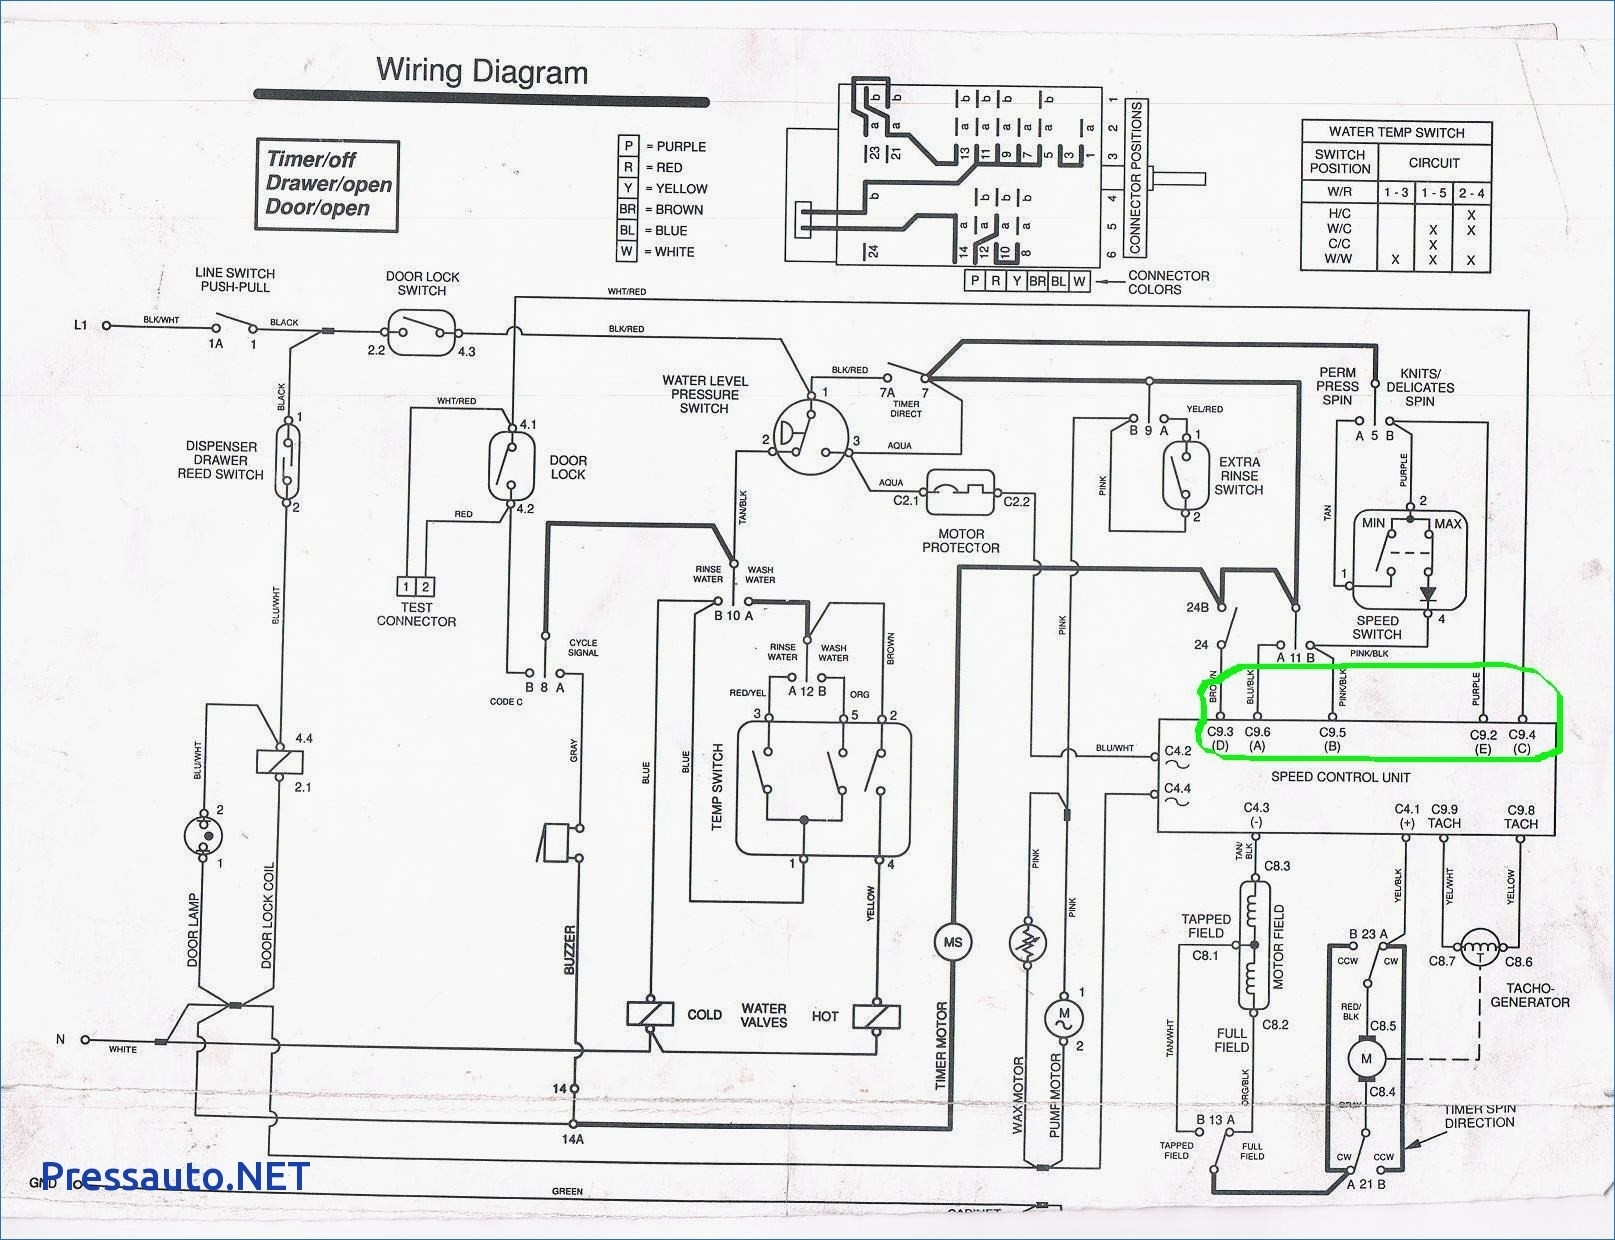 Diagram Of Wiring Whirlpool Oven